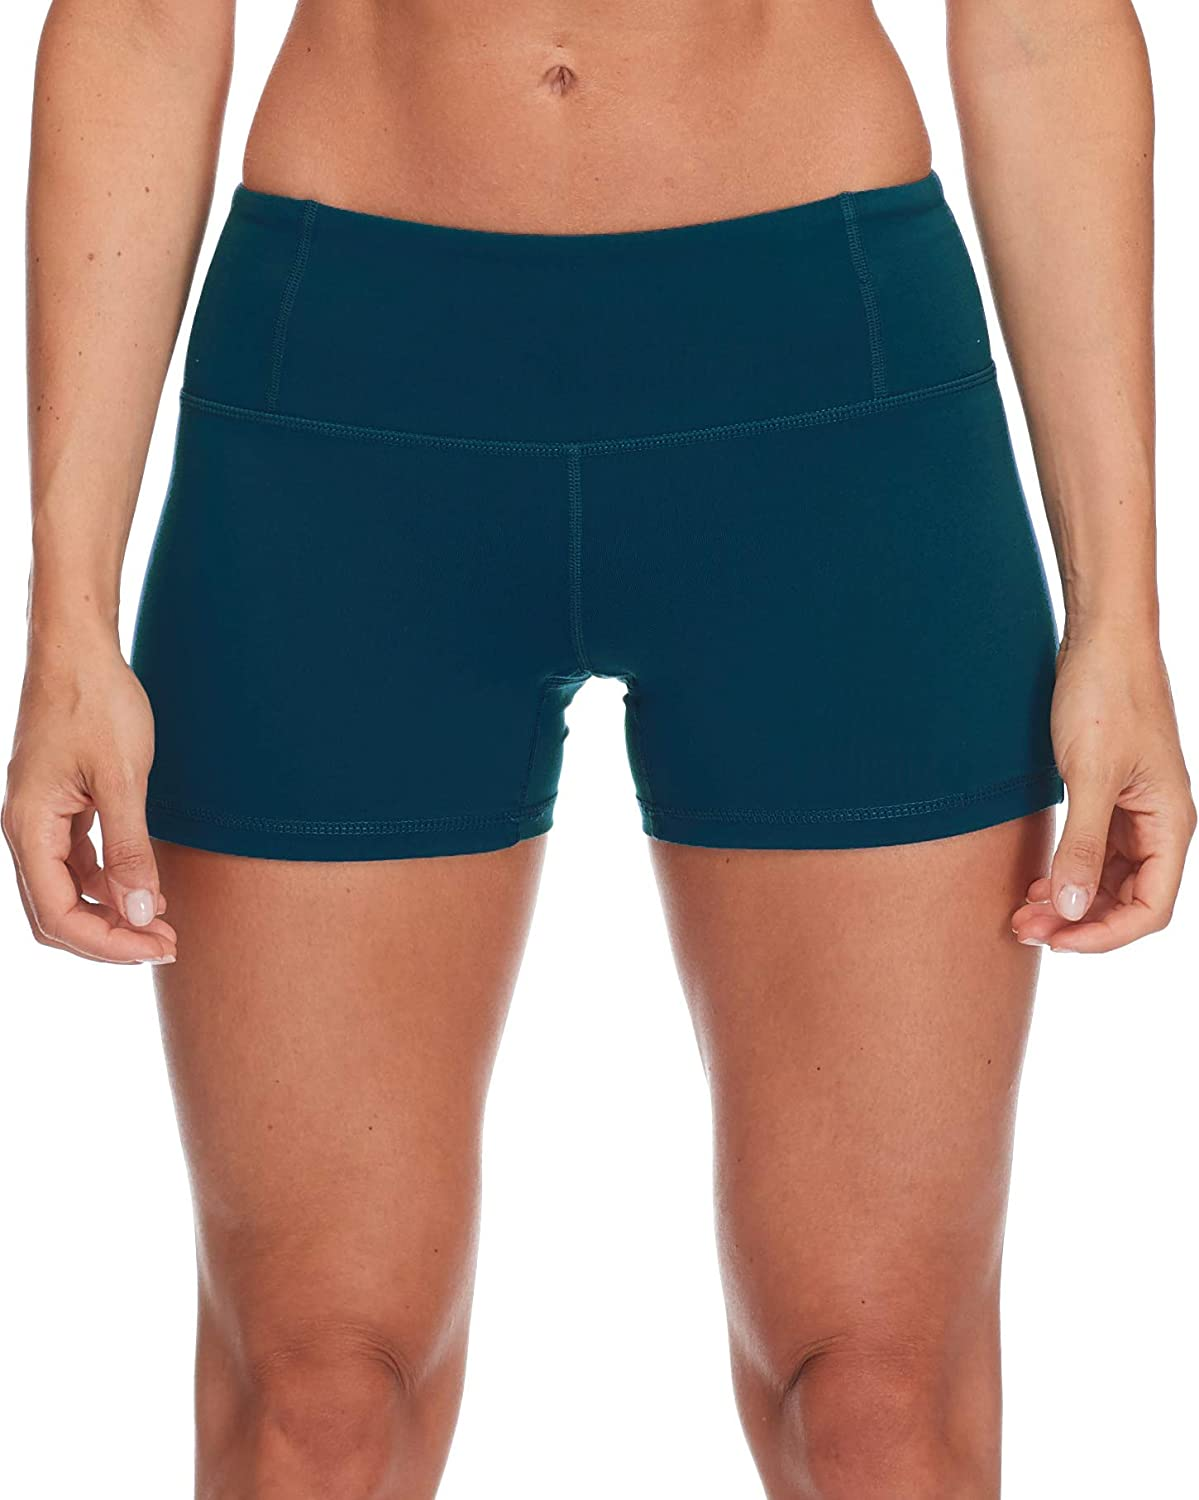 Body Glove Women's Get Shorty Performance Fit Activewear Short